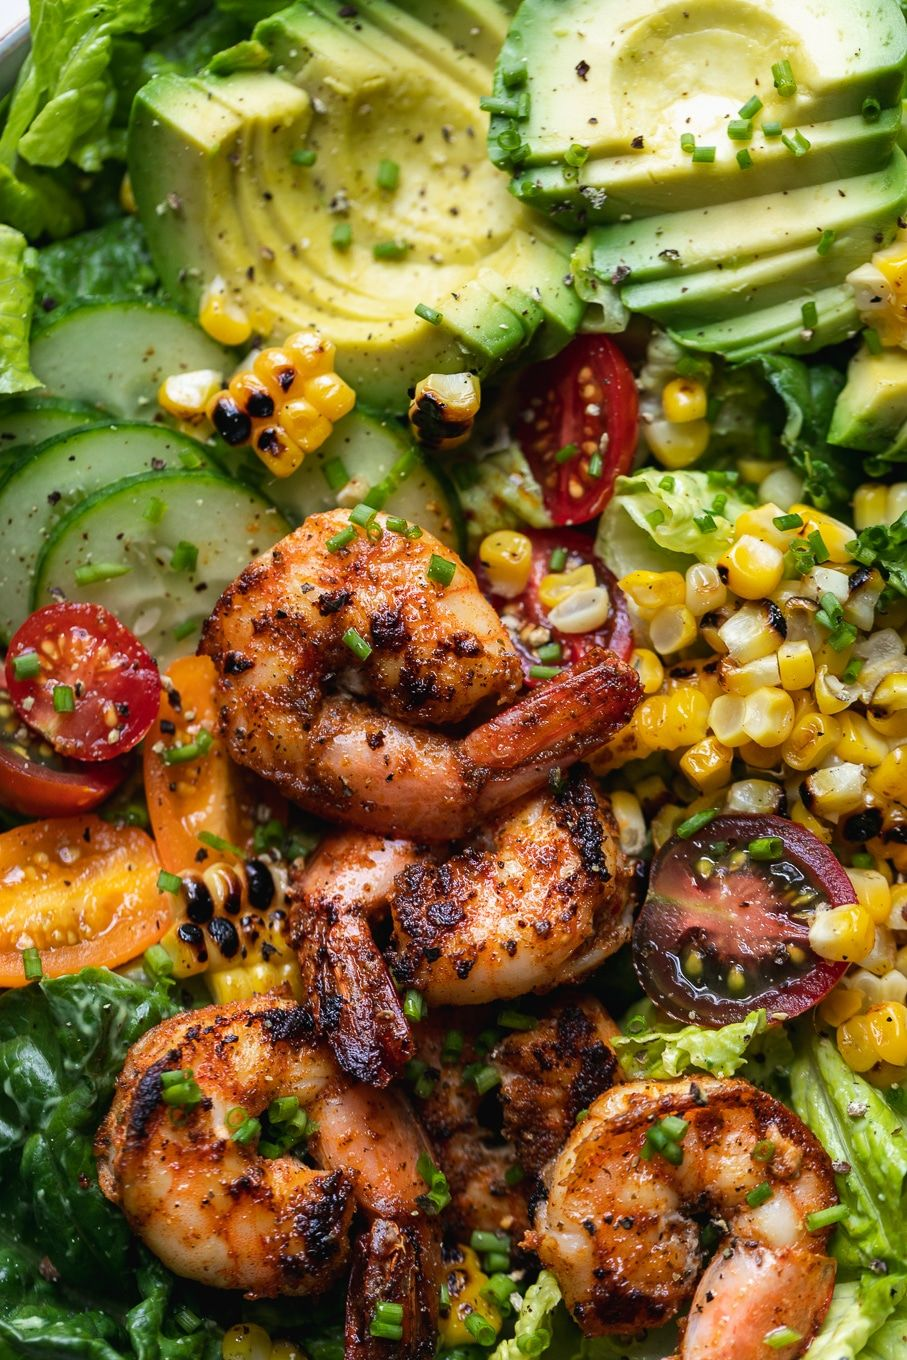 Blackened Shrimp and Grilled Corn Salad with Avocado Ranch